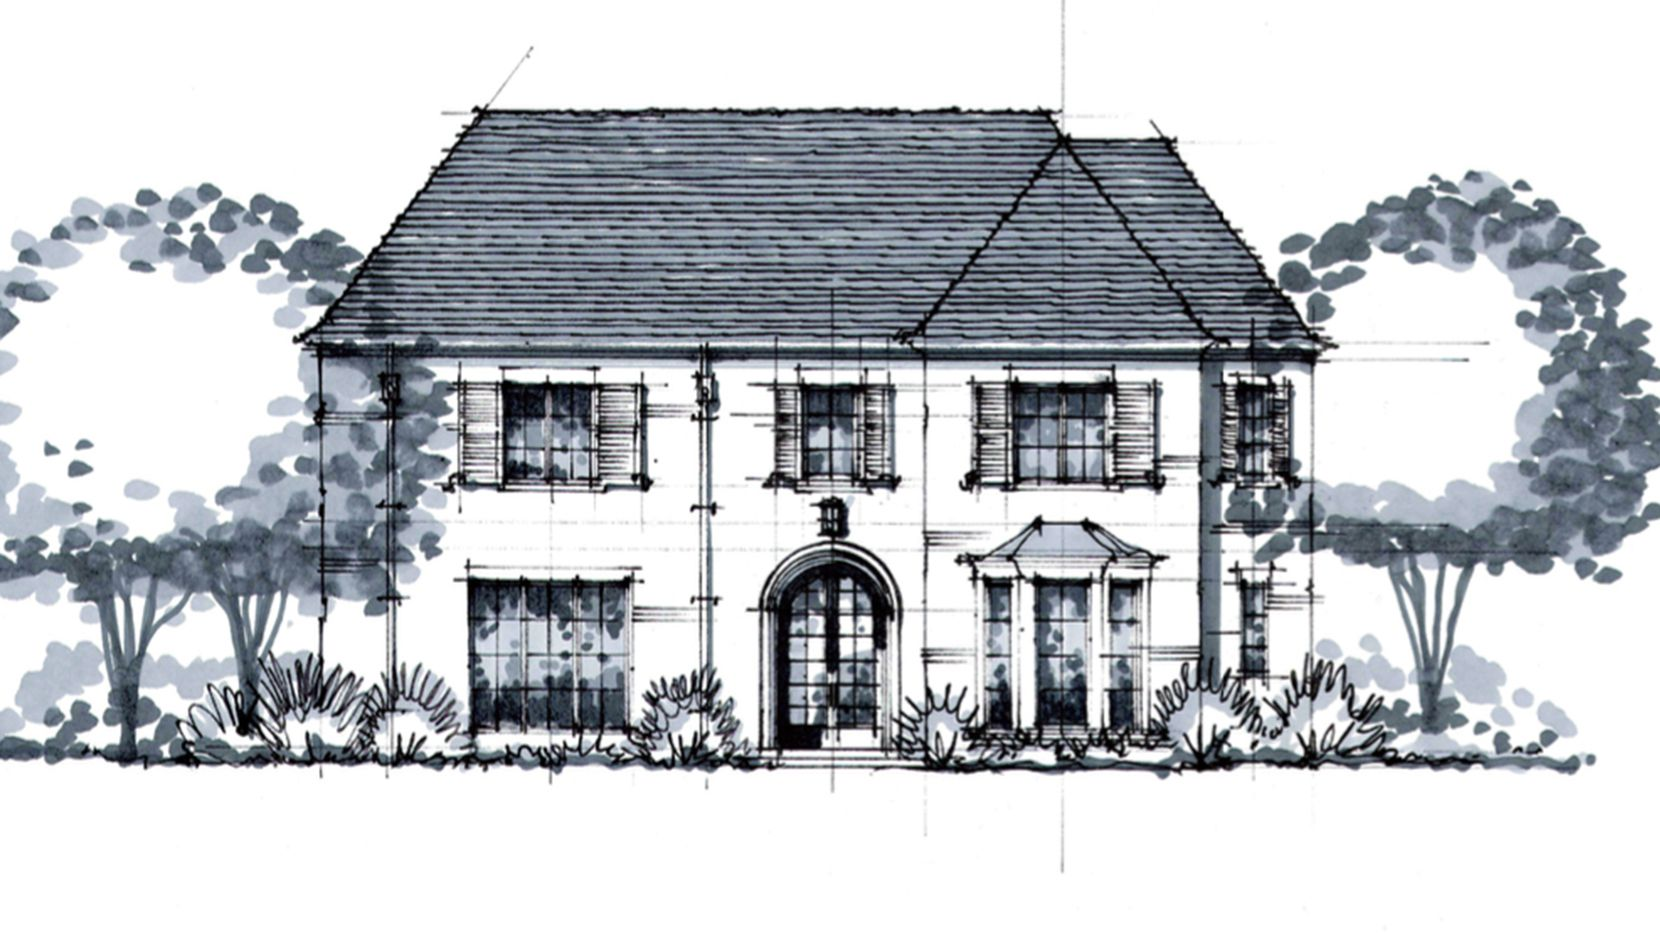 This is an artist's rendering of the home at 3829 Hanover. Built by LRO Residential, it is available for buyer customization and priced at $3,847,000.